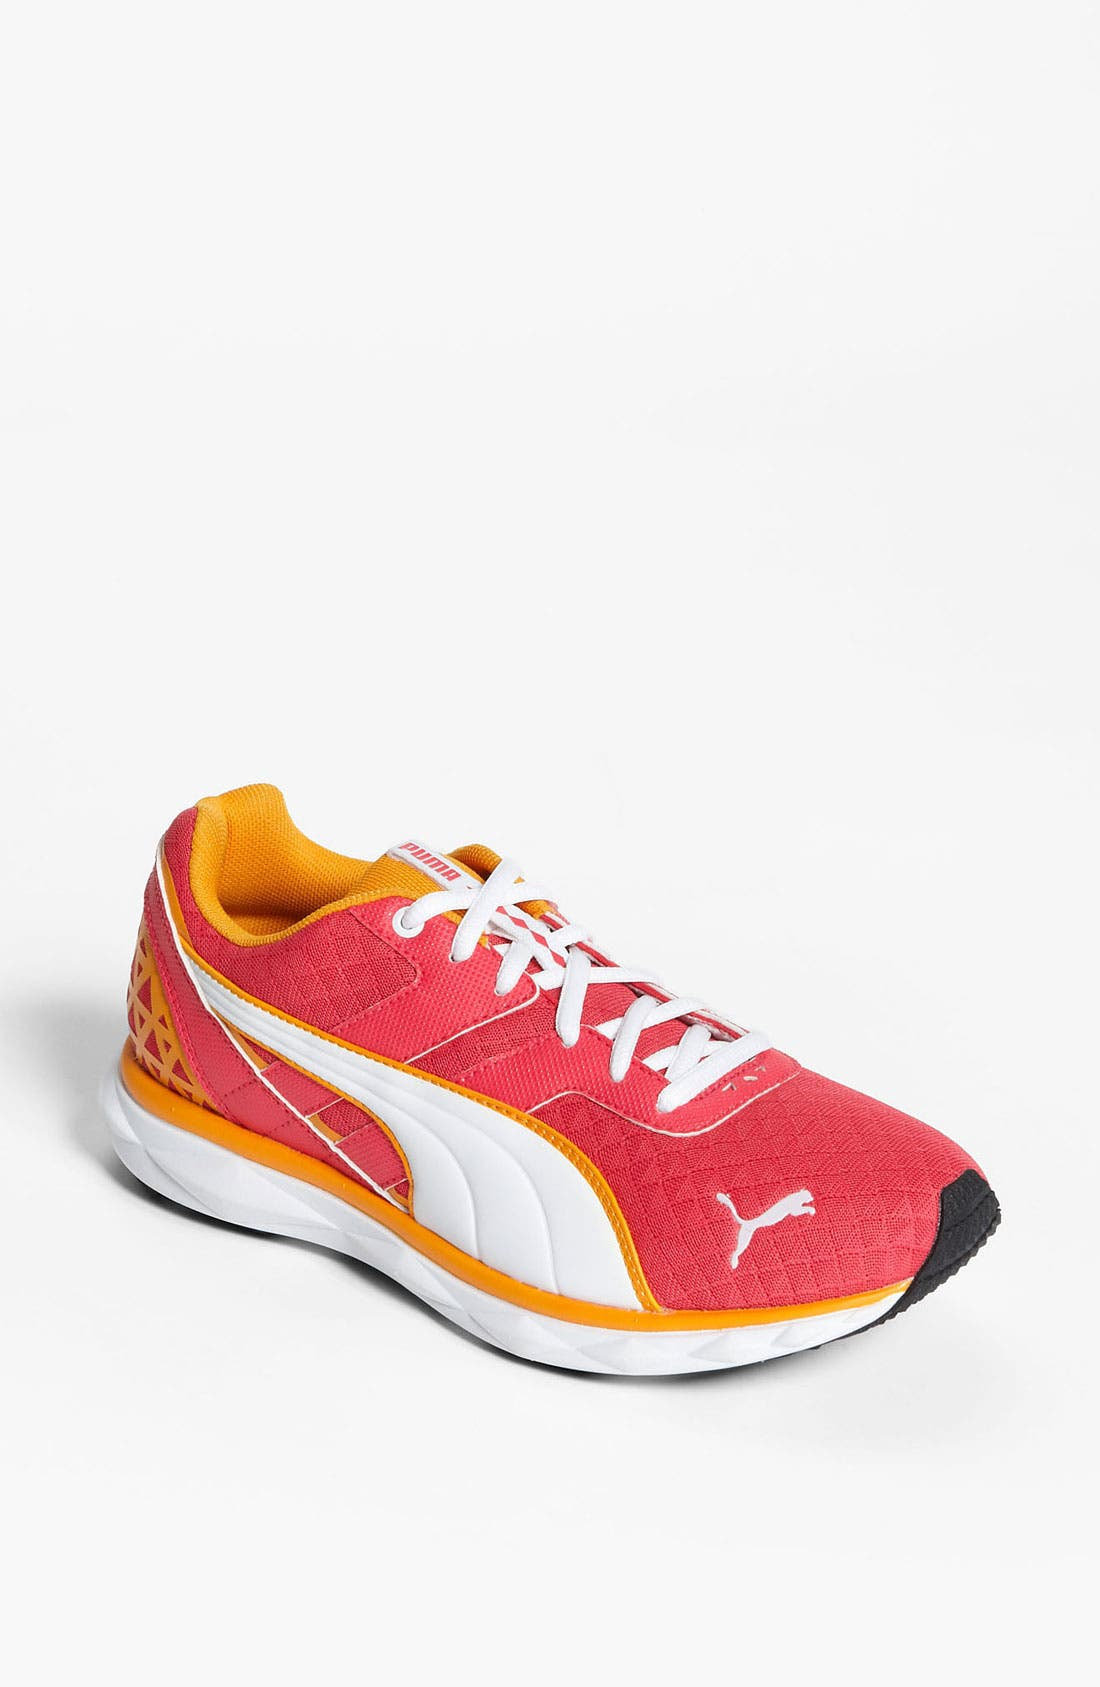 Alternate Image 1 Selected - PUMA 'Pumagility Speed 2' Running Shoe (Women)